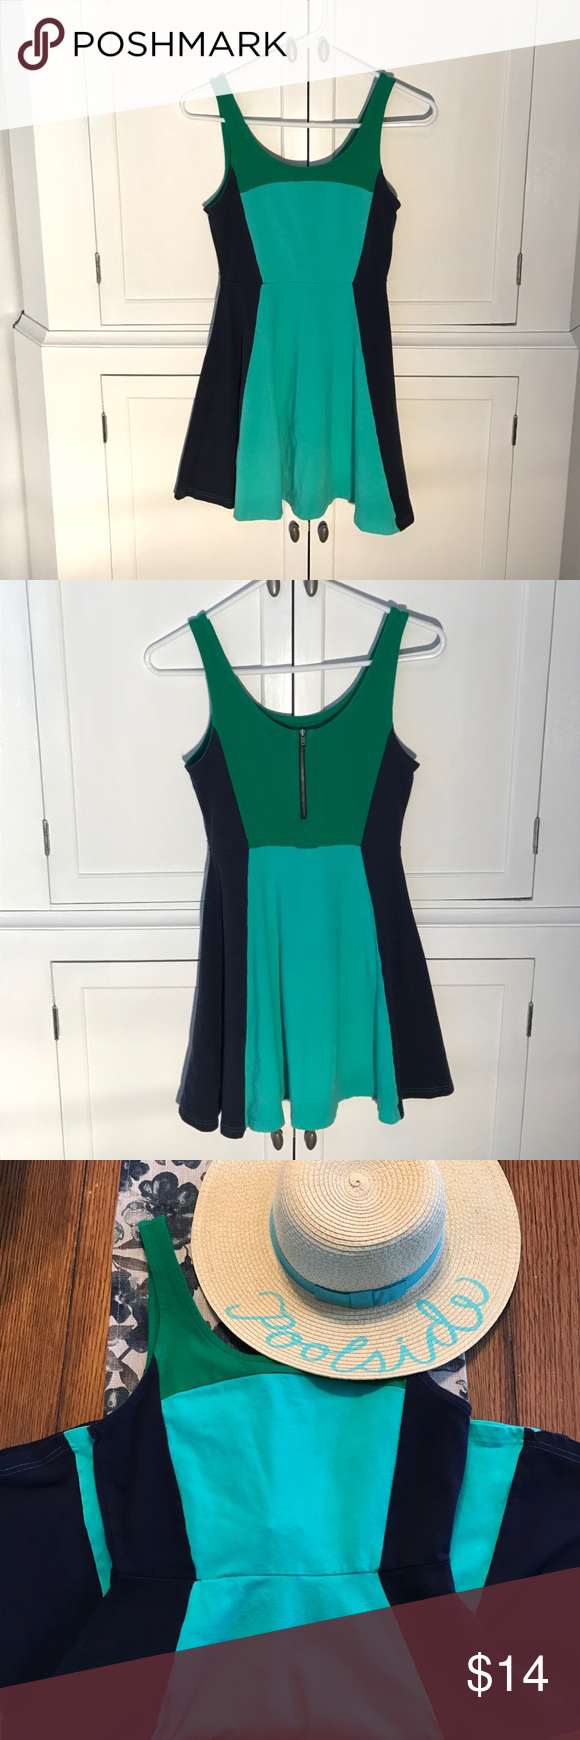 """E X P R E S S Navy, green and light blue dress 